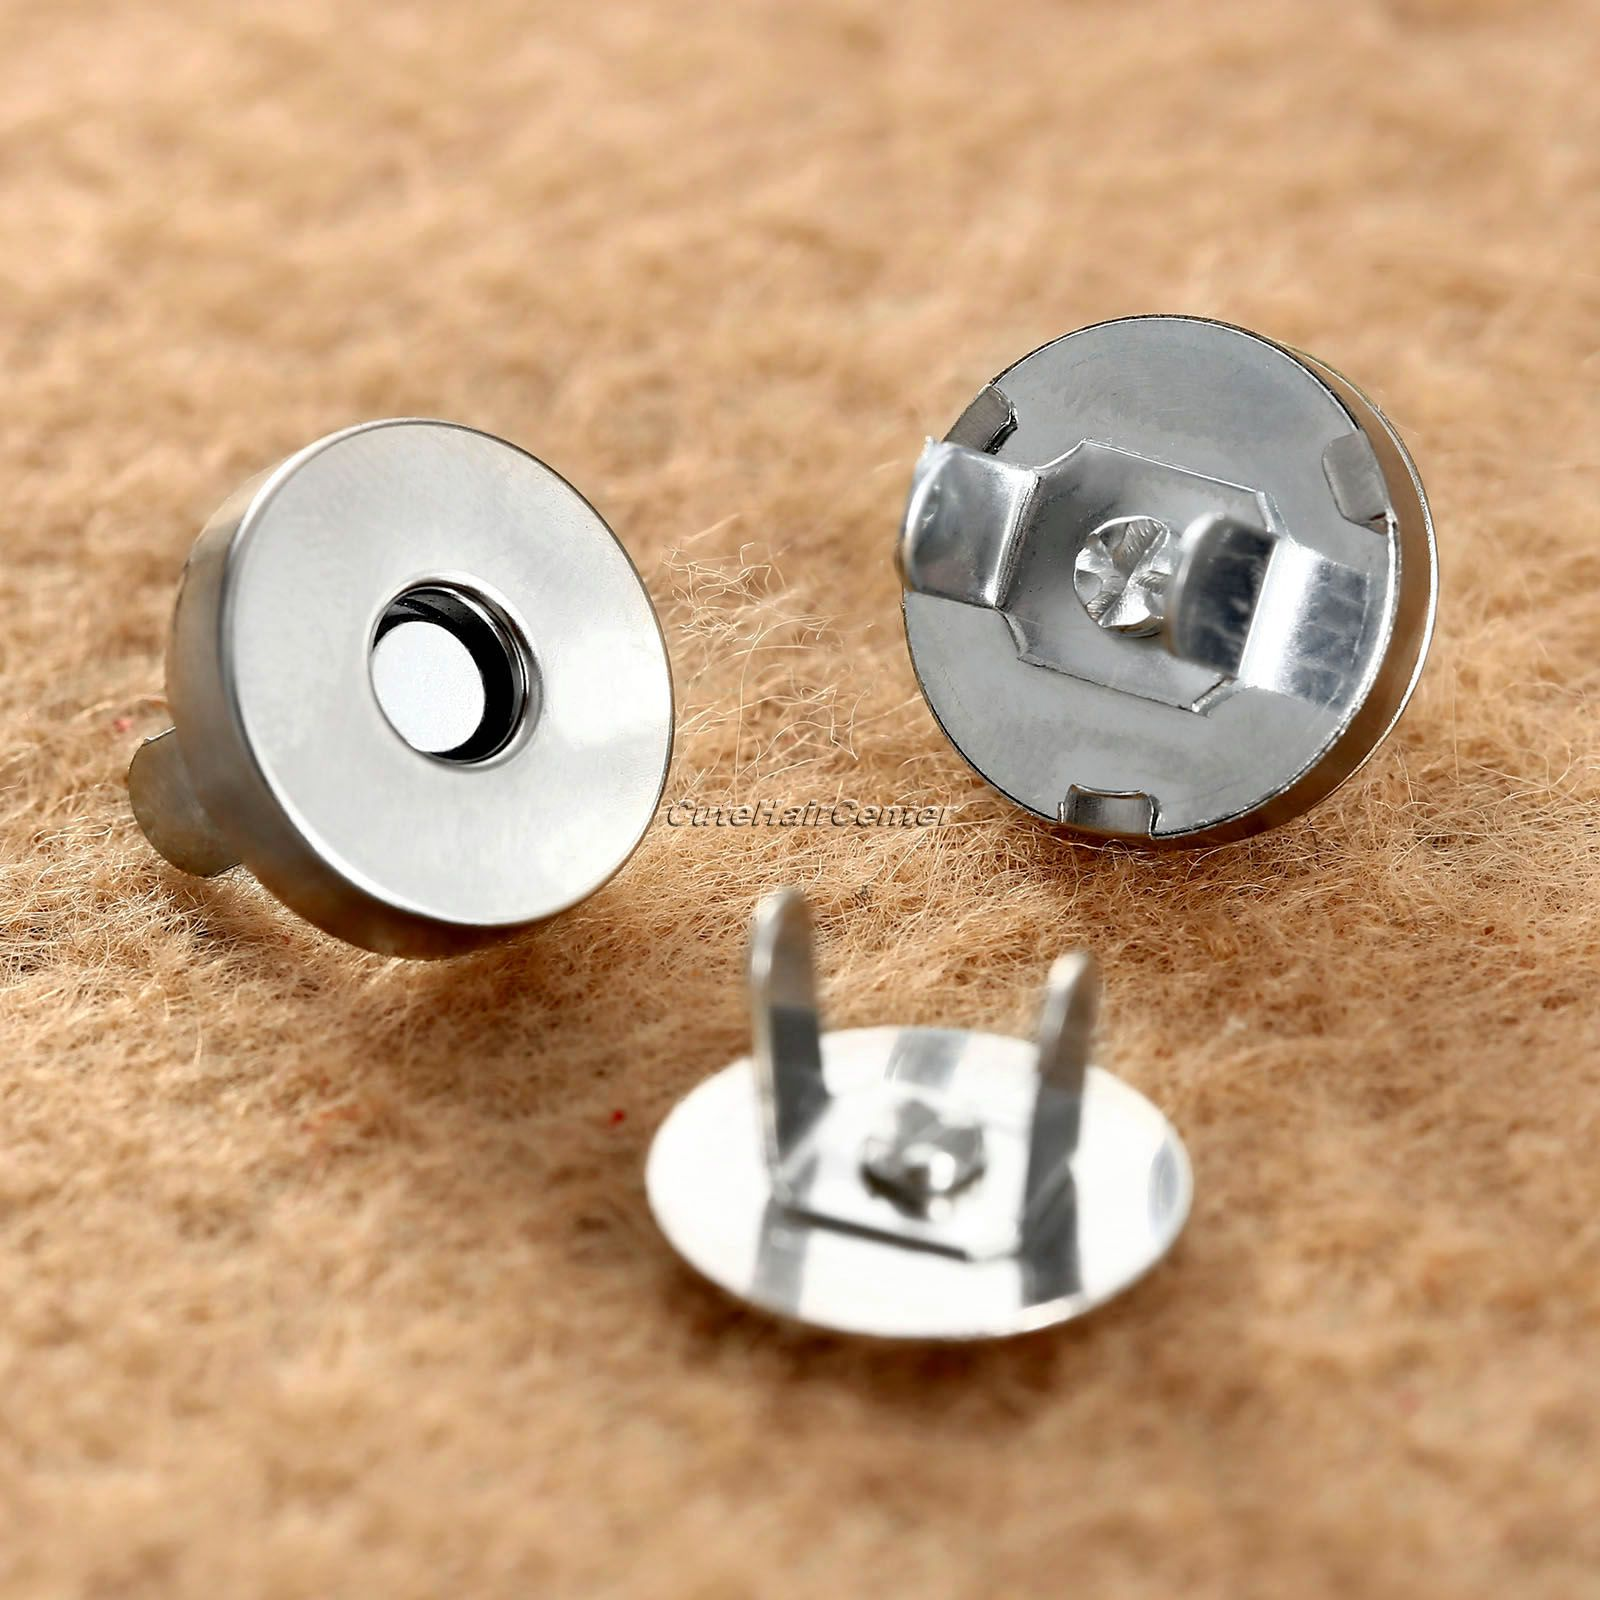 Hot Sale 10 Sets Magnetic Metal Snaps Fasteners Bag Purse Clasps Sewing Buttons Handbag Craft Leather Coat Buttons 14mm/18mm